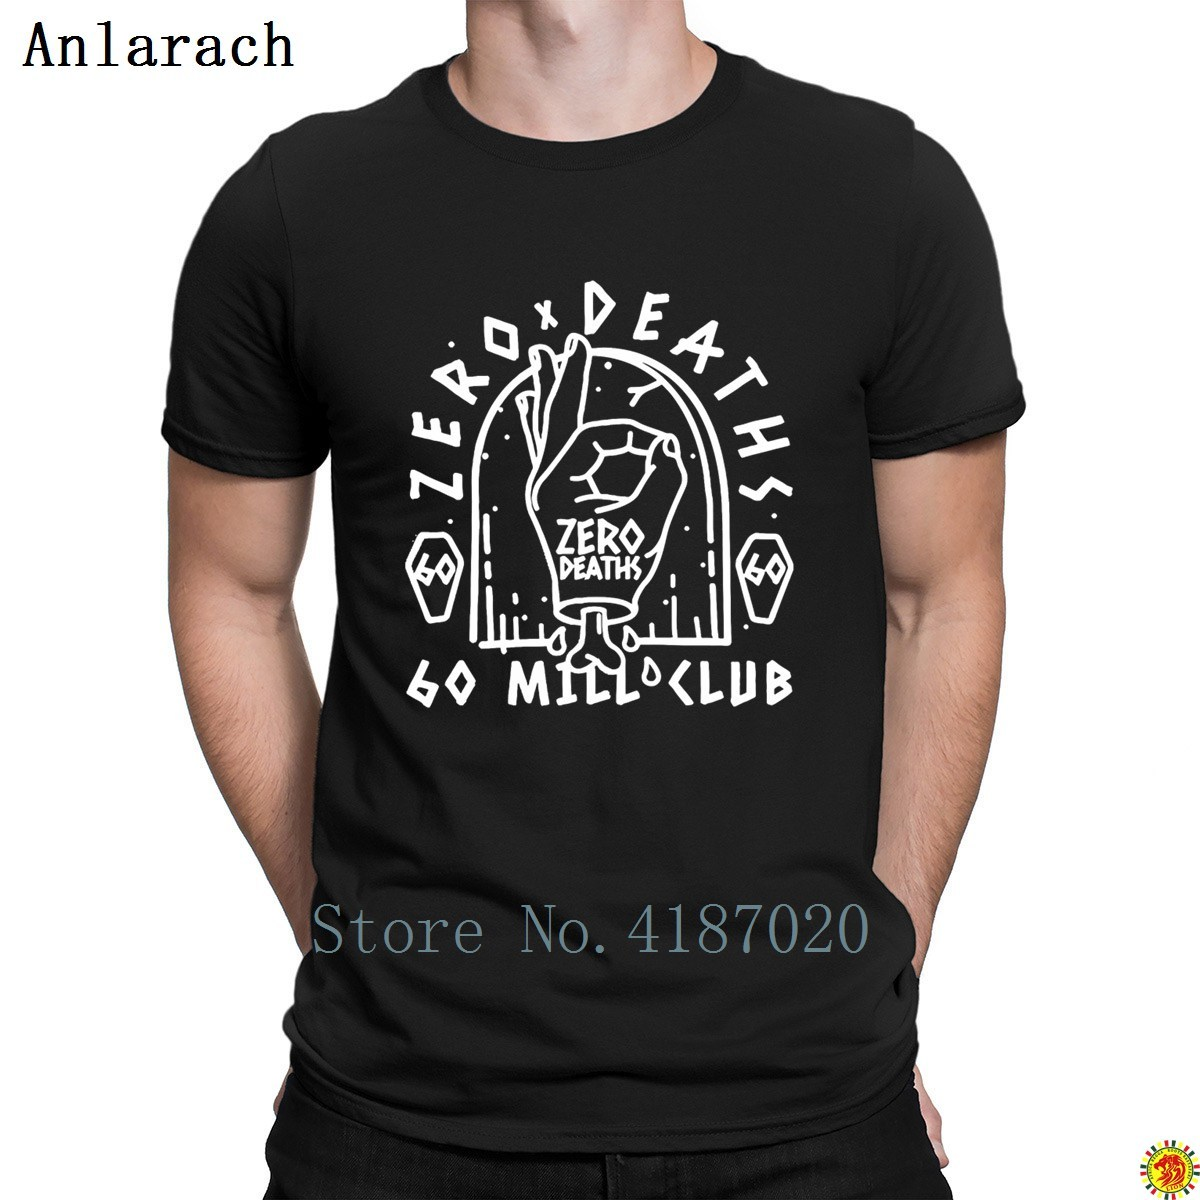 60 Mill Club Pewdie Pie Zero Deaths T-Shirt Cute Trendy Novelty Men's Tshirt 100% Cotton Character Clothing Summer Style